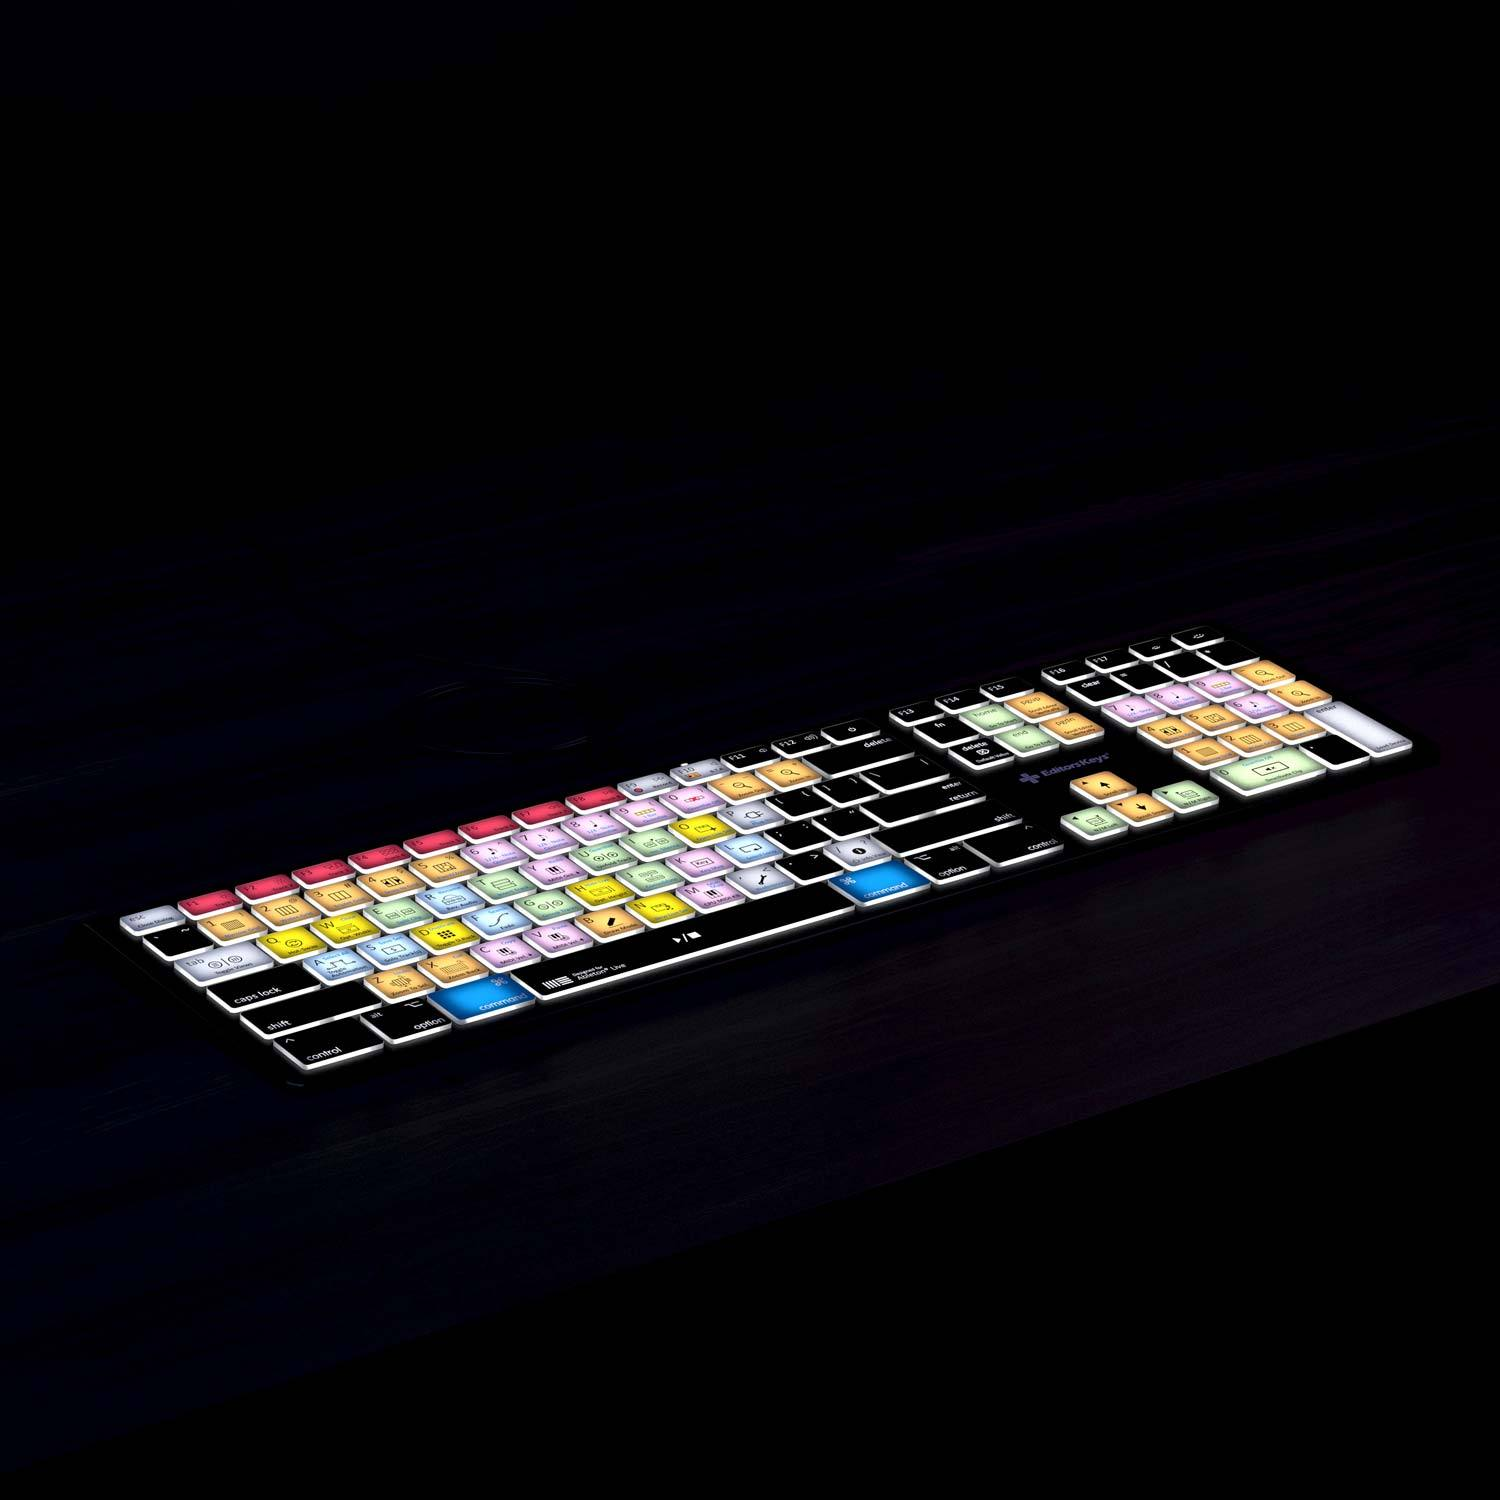 Ableton Live Keyboard - Backlit - For Mac or PC